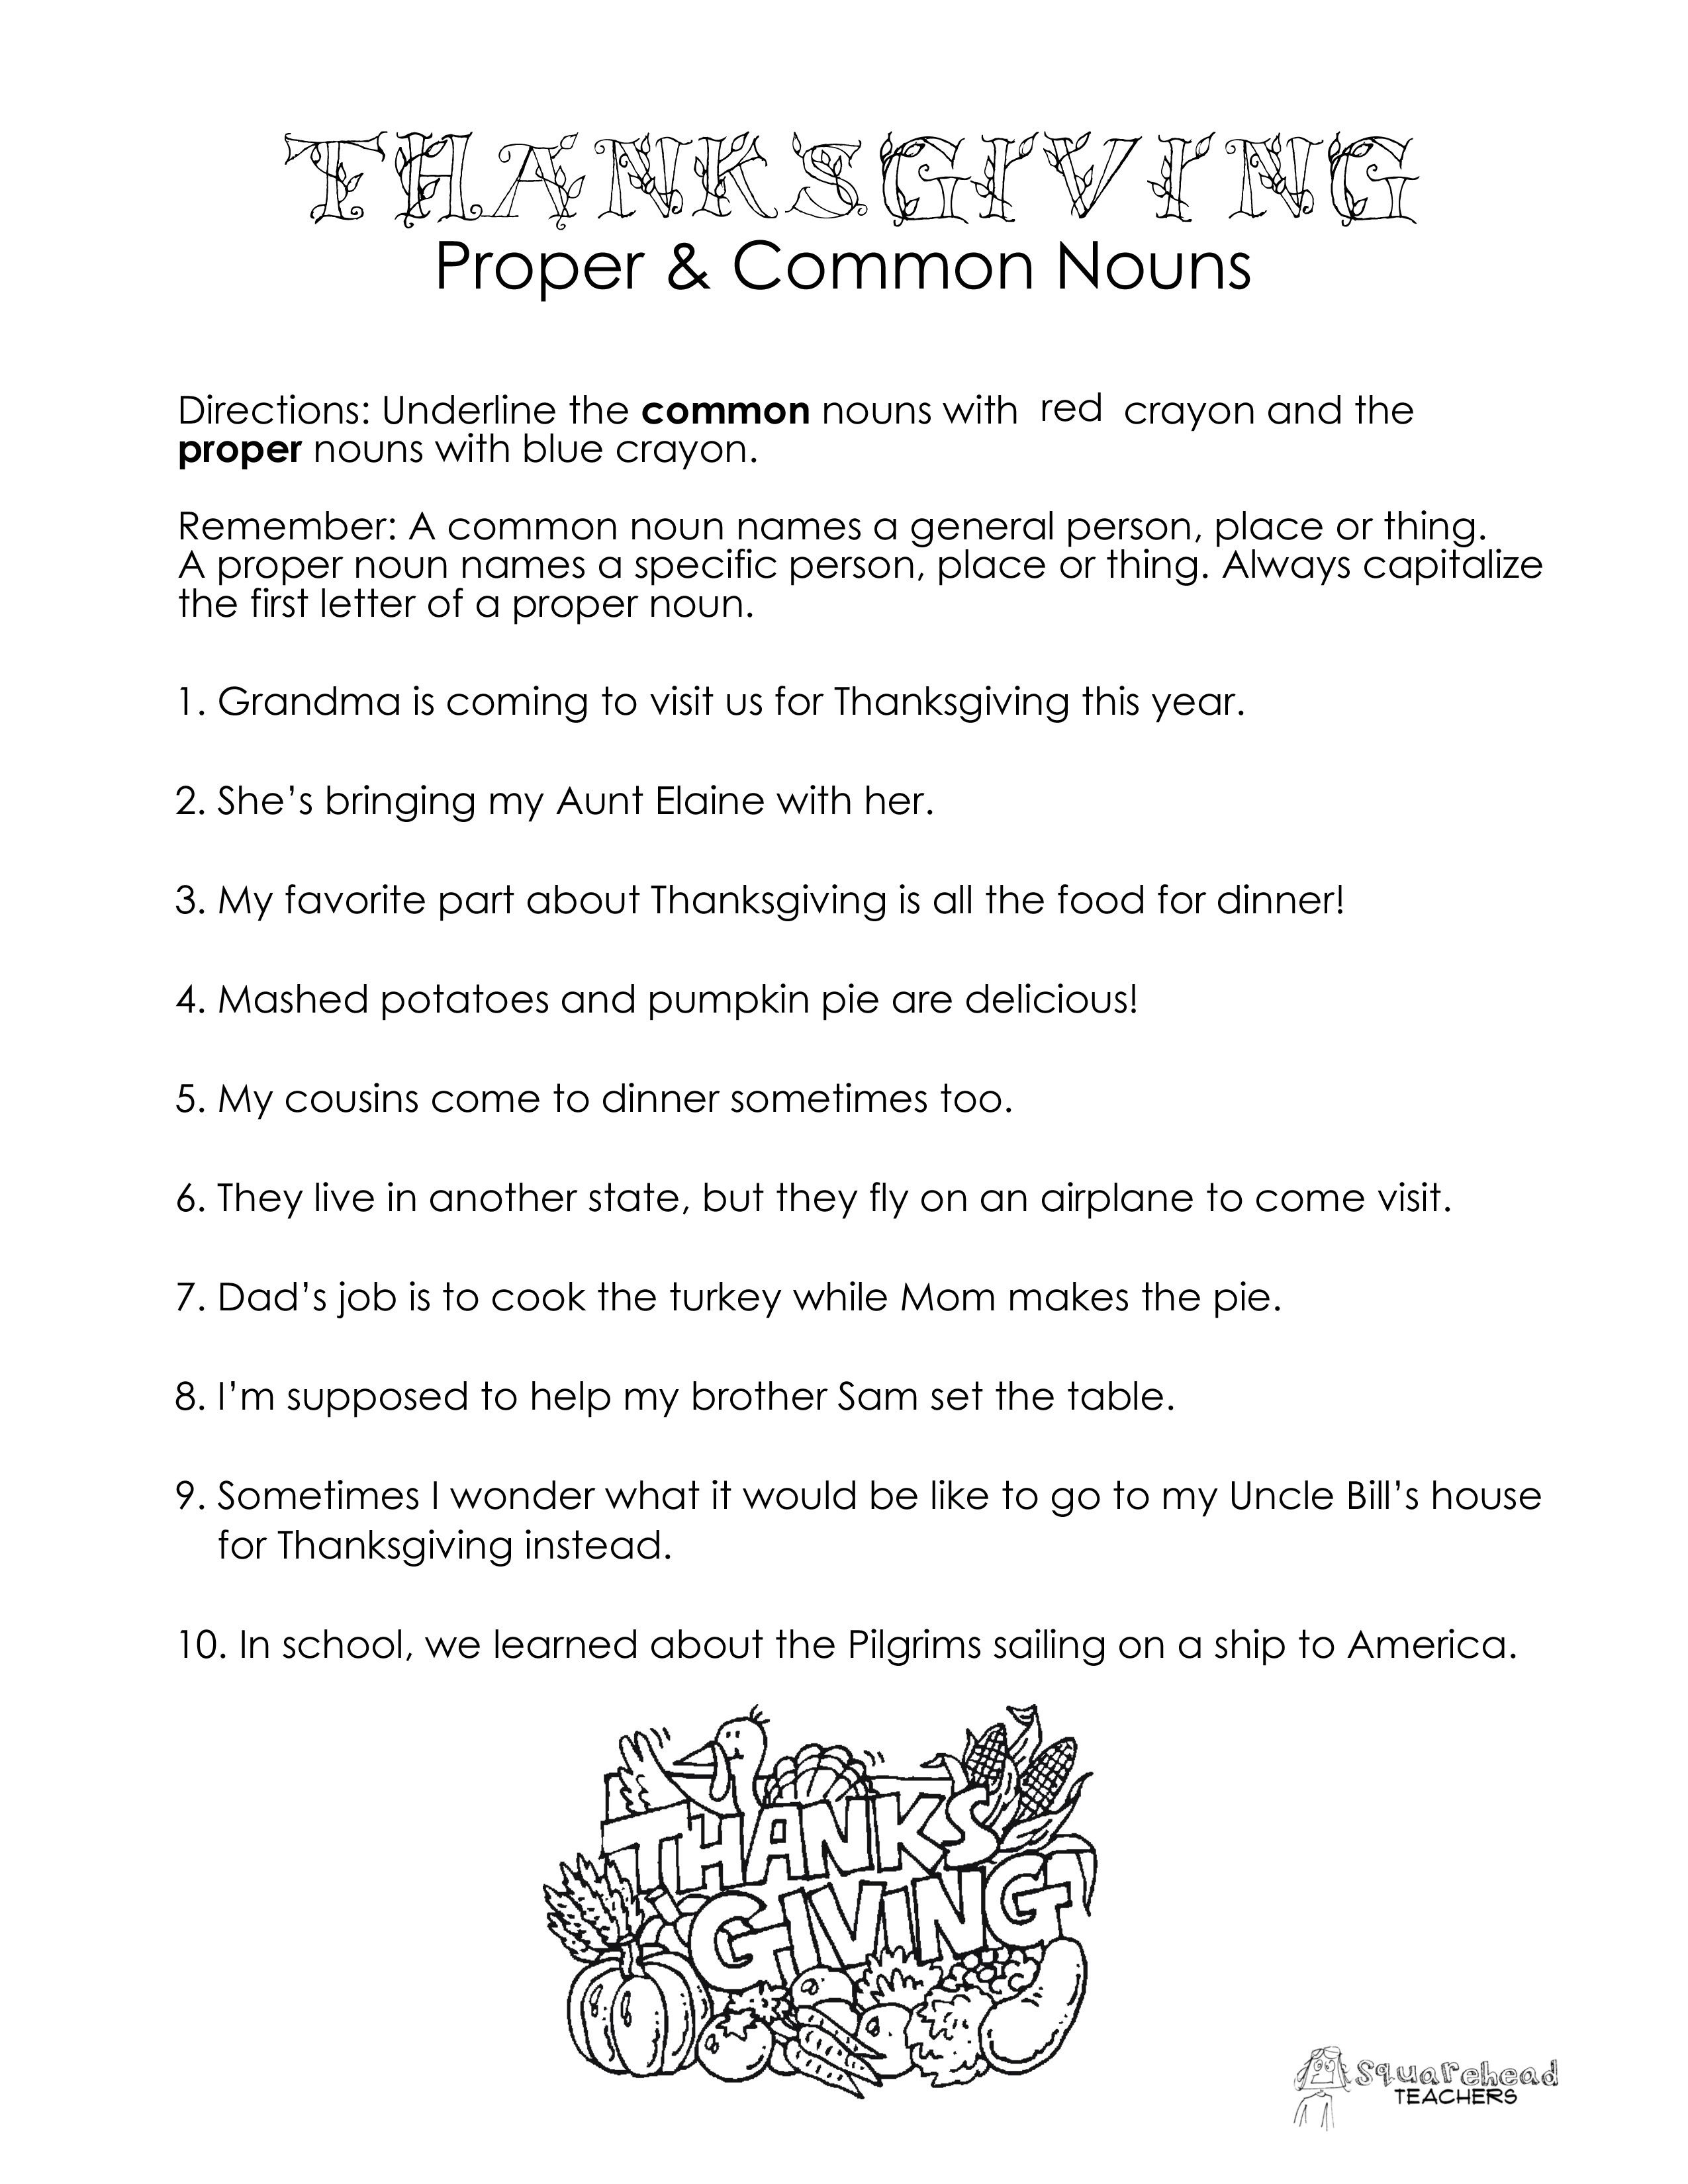 Thanksgiving Proper Amp Common Nouns